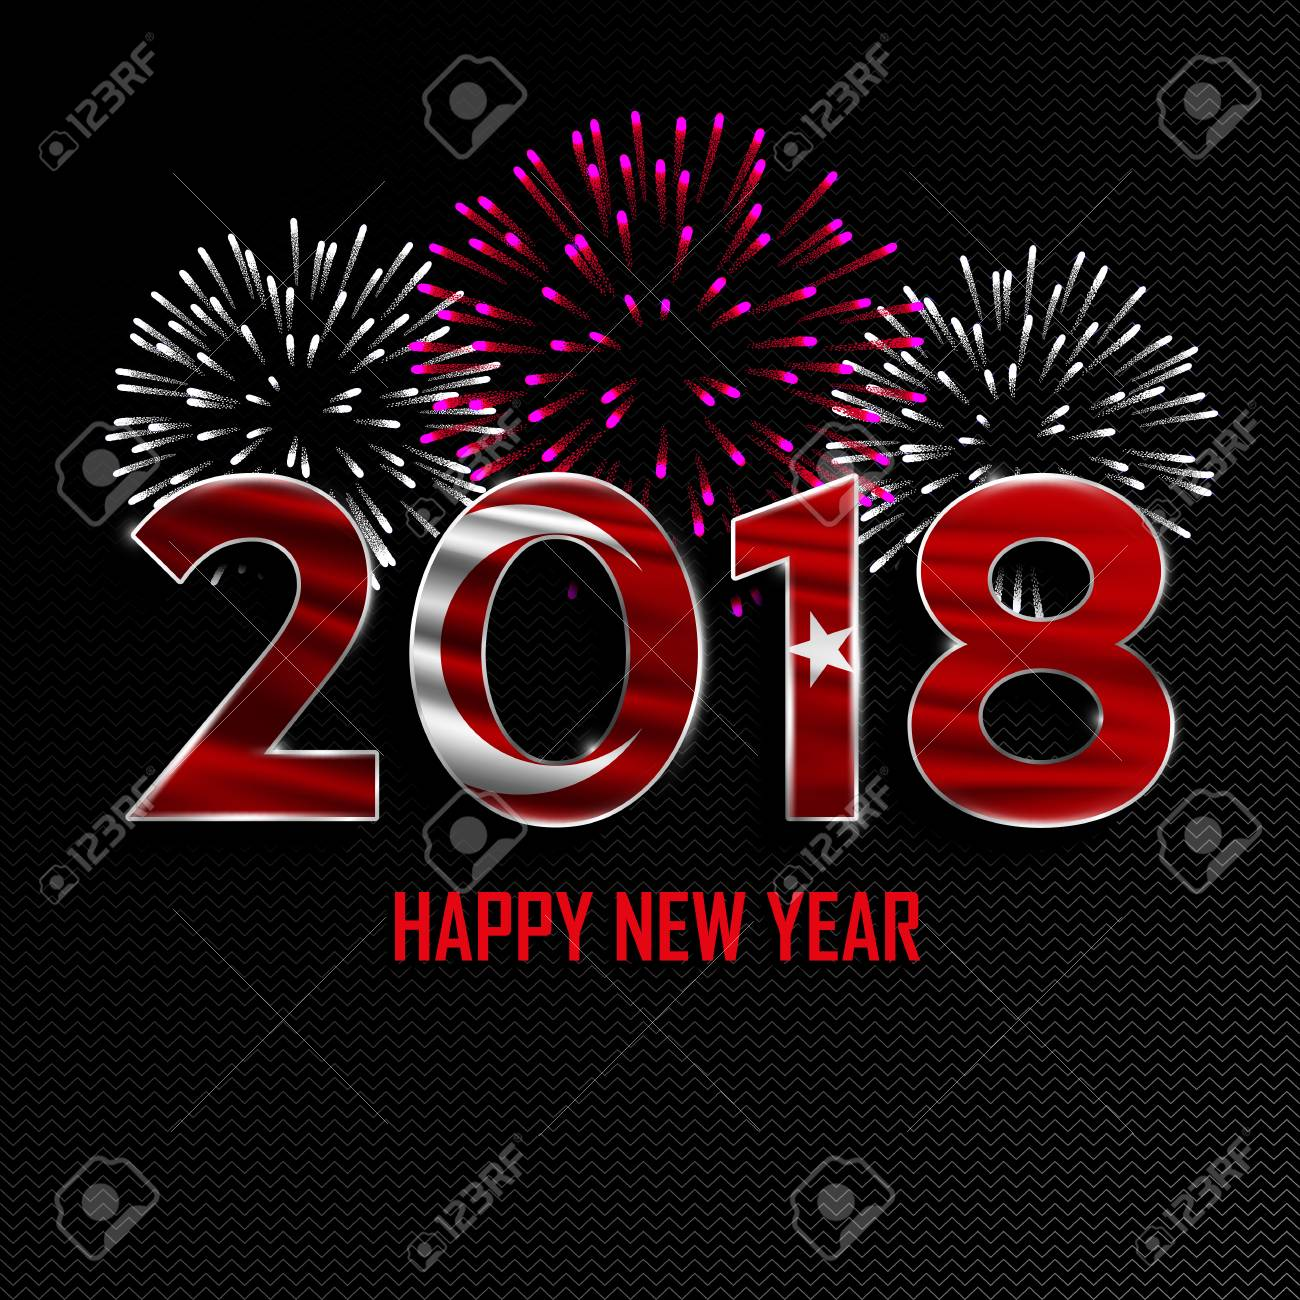 happy new year and merry christmas 2018 new year background with national flag of turkey